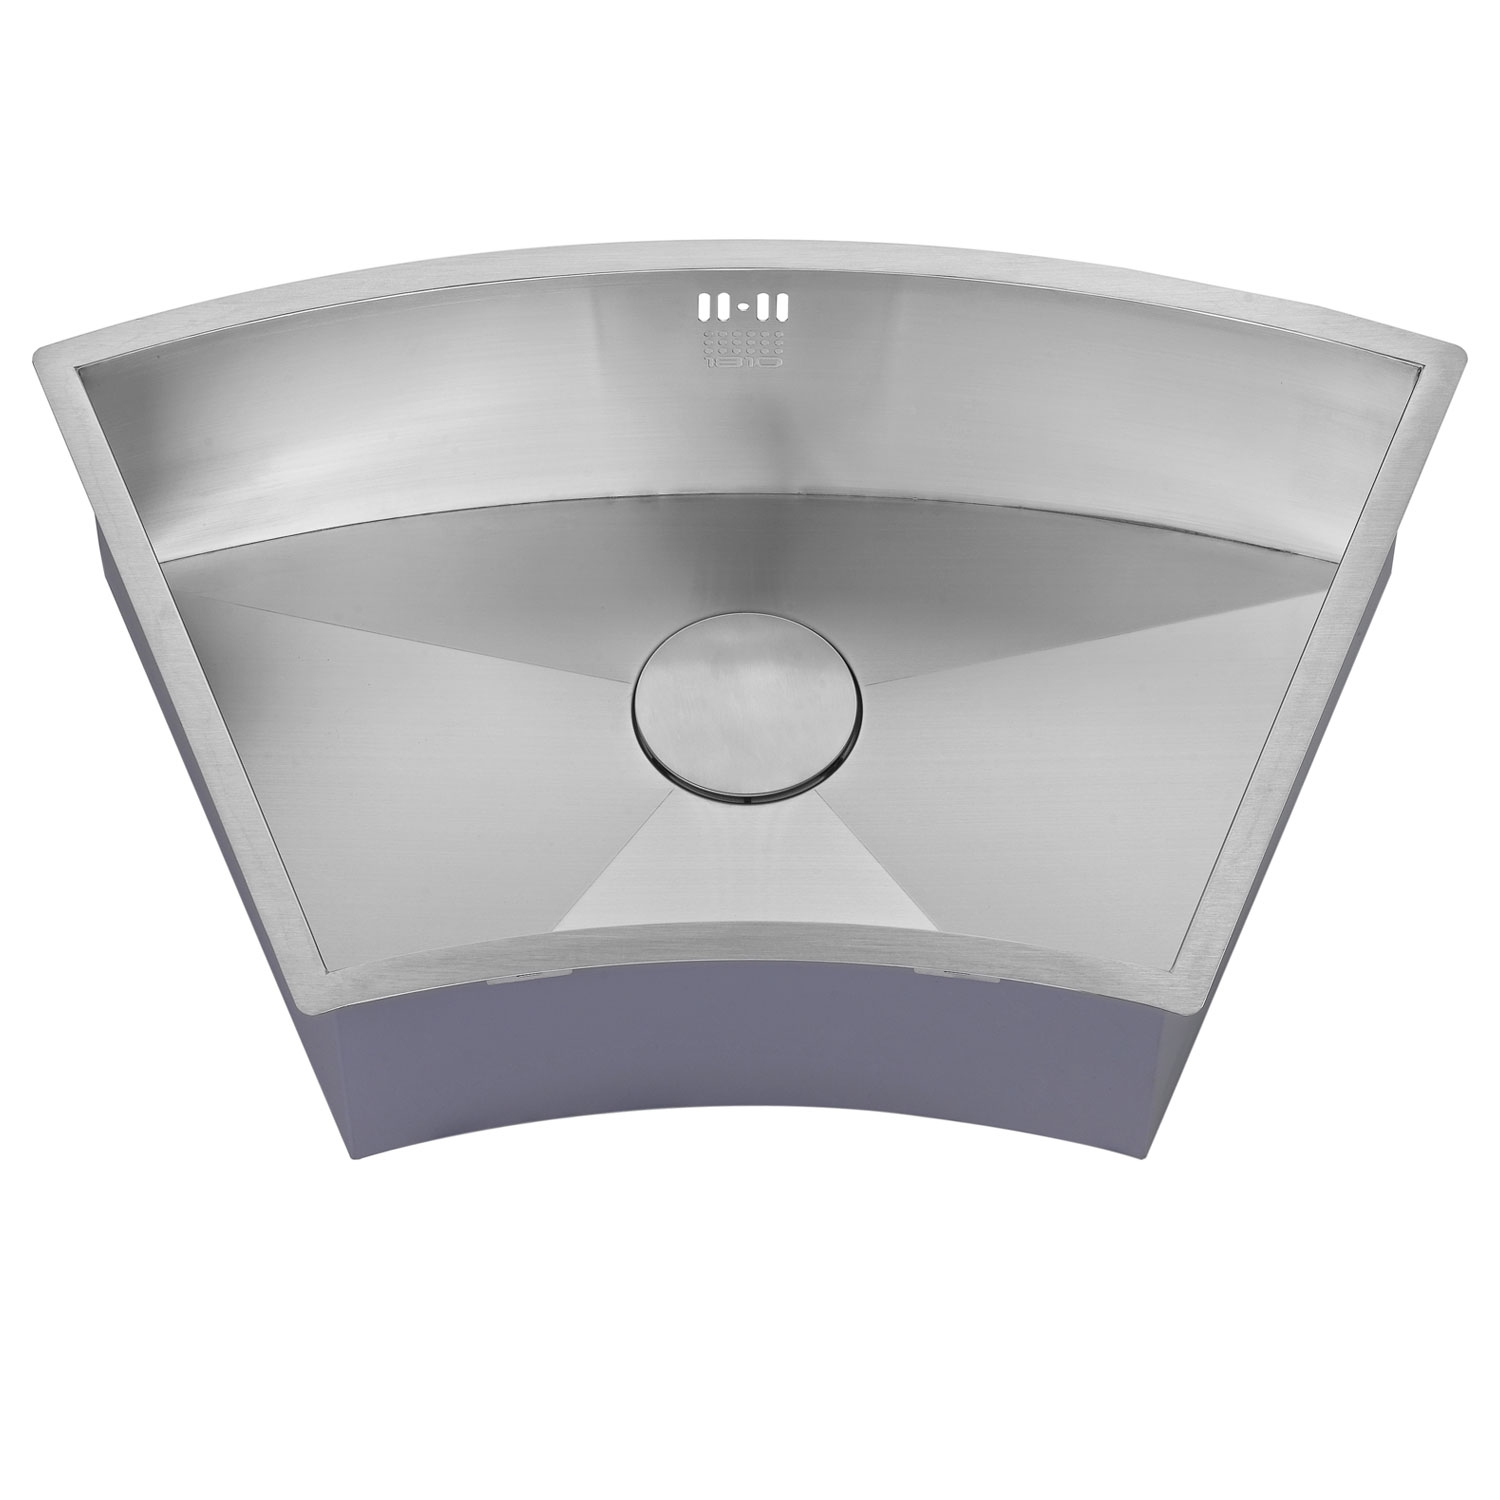 The 1810 Company Zenuno 675U Curve 1.0 Bowl Kitchen Sink - Stainless Steel-1